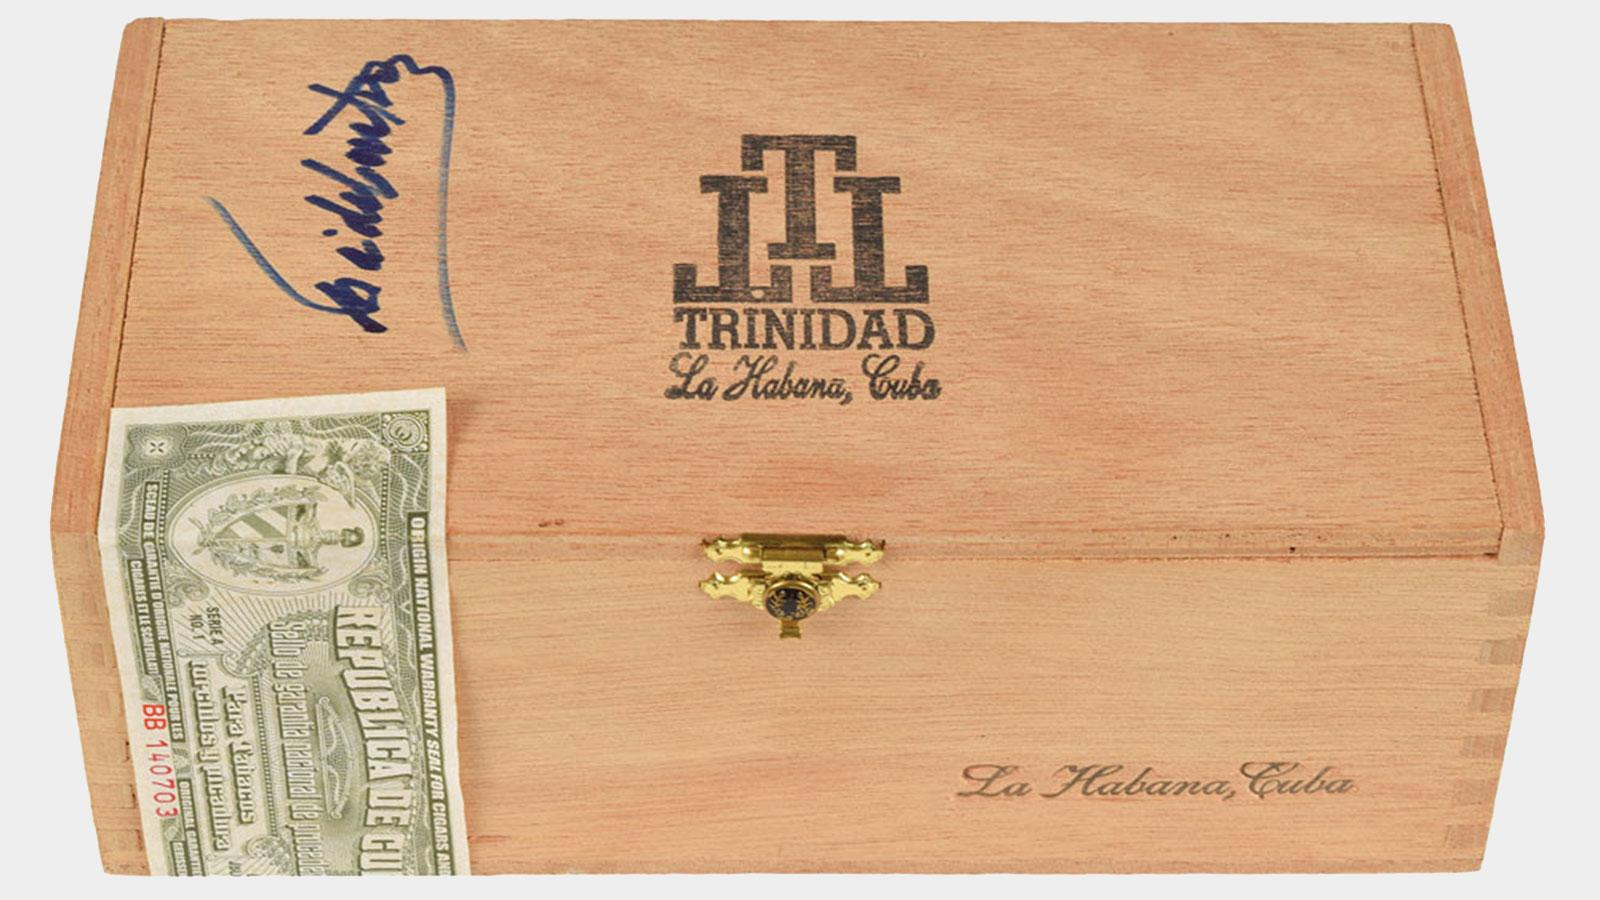 Fidel Castro's Trinidads Up For Auction